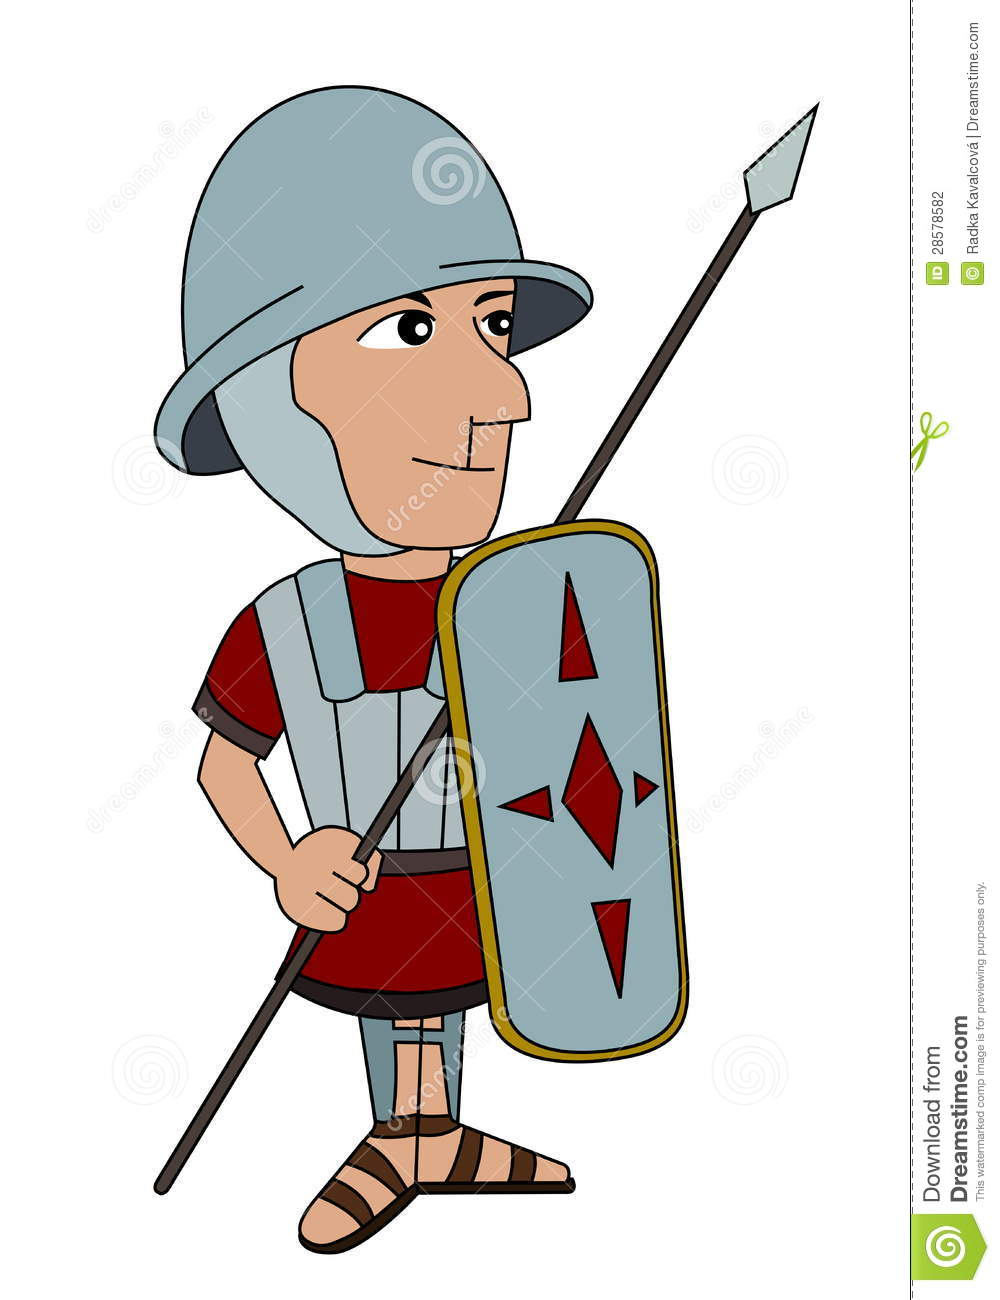 Punic wars illustration of a roman legionnaire isolated on a white